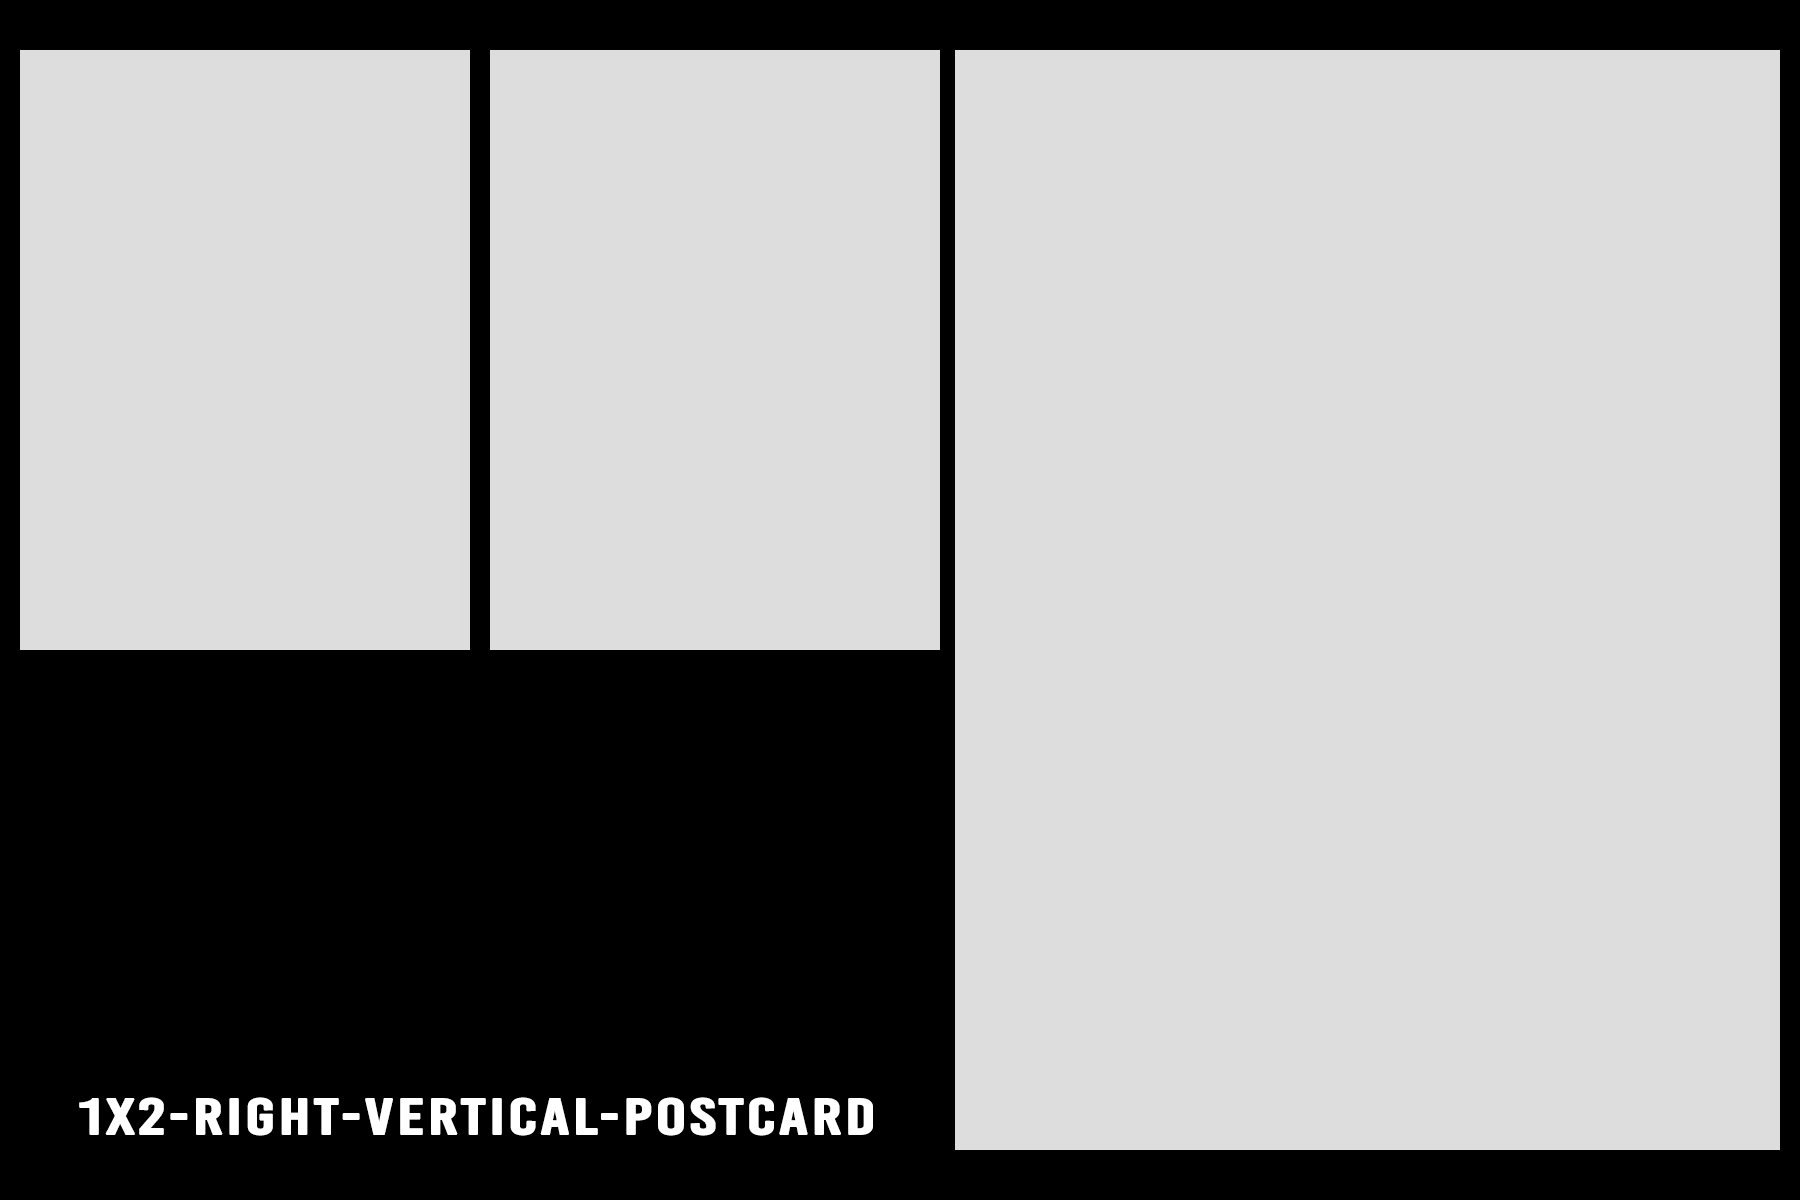 1x2-right-vertical-postcard